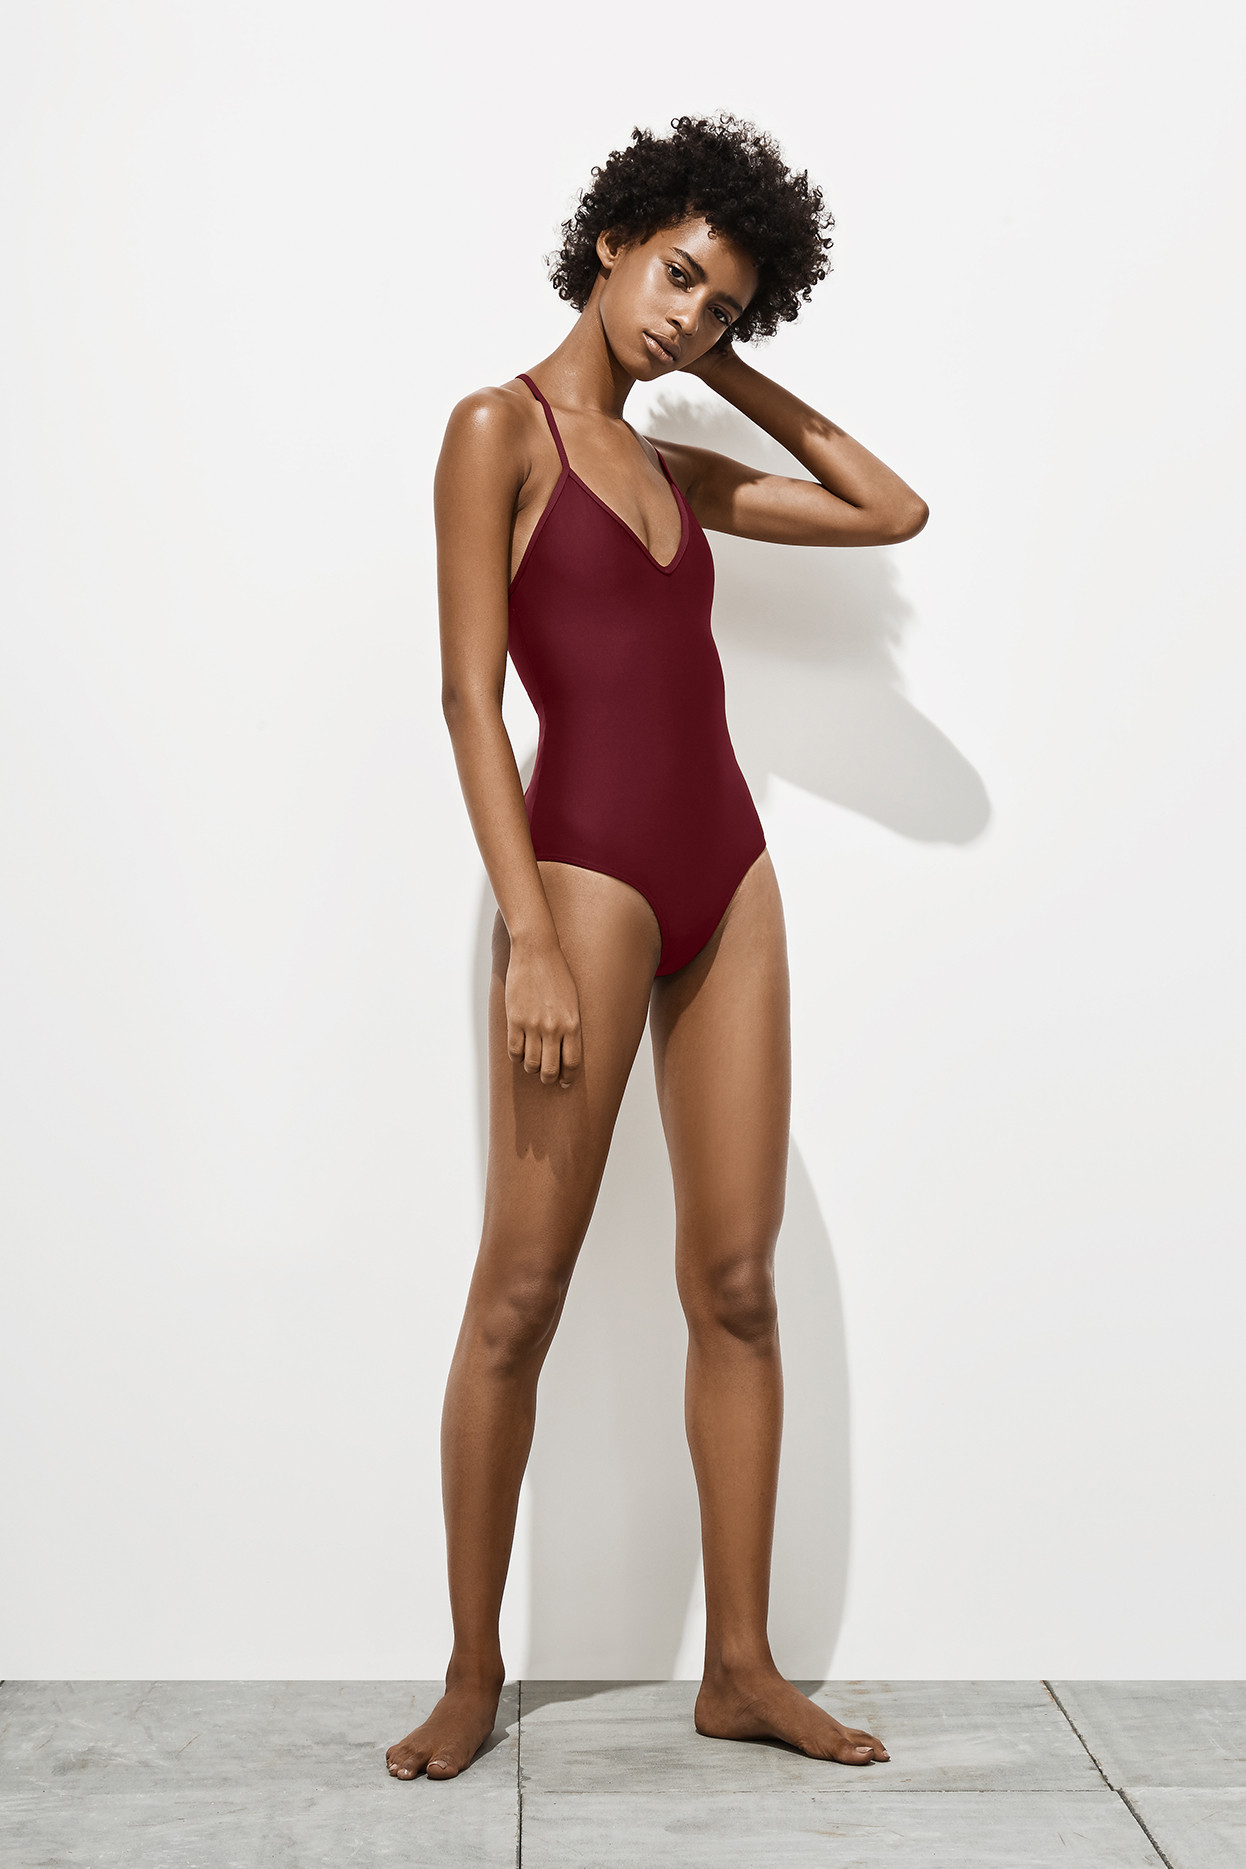 One-Piece Swimsuits That Are as Cute as Any Bikini